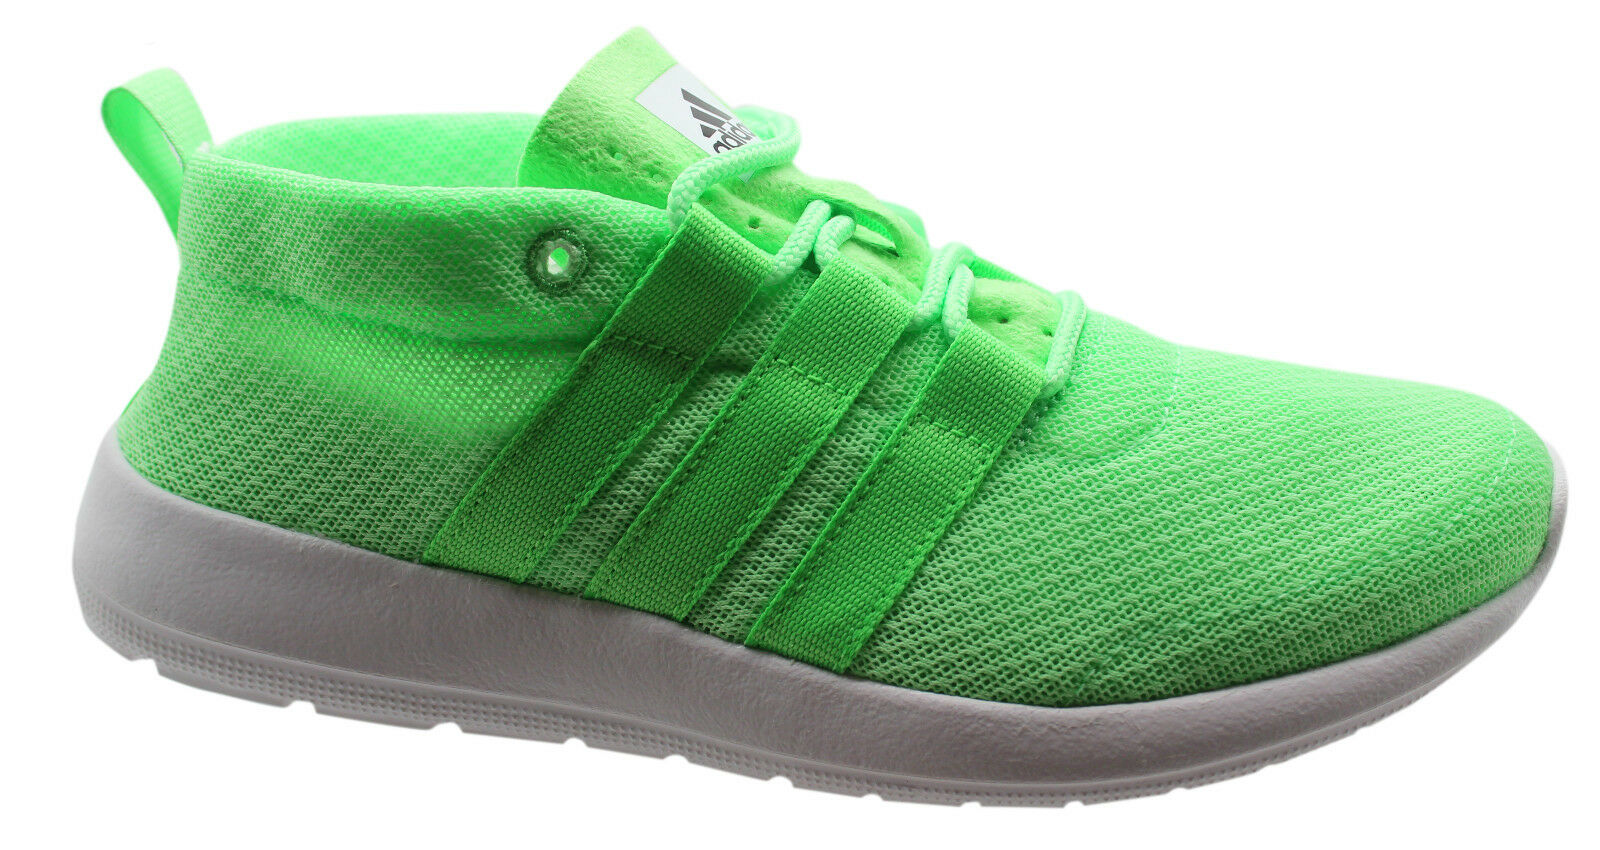 Adidas Element Voyager Shoes 2 Womens Textile Green Running Trainers Shoes Voyager B44339 U87 b504d4